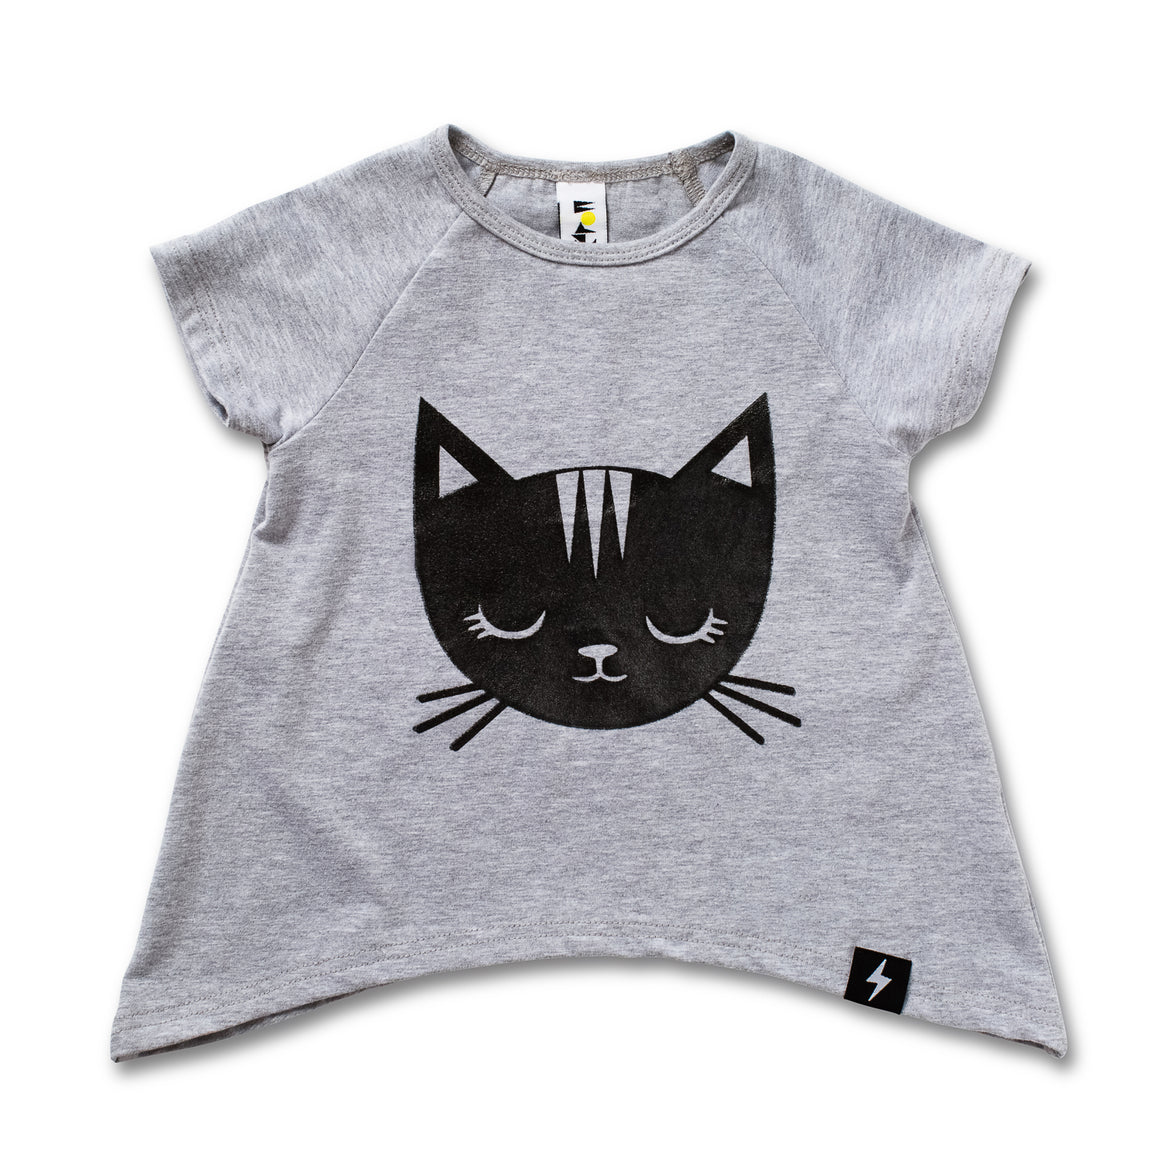 Kapow Kids Jungle Kitty Raglan T-shirt